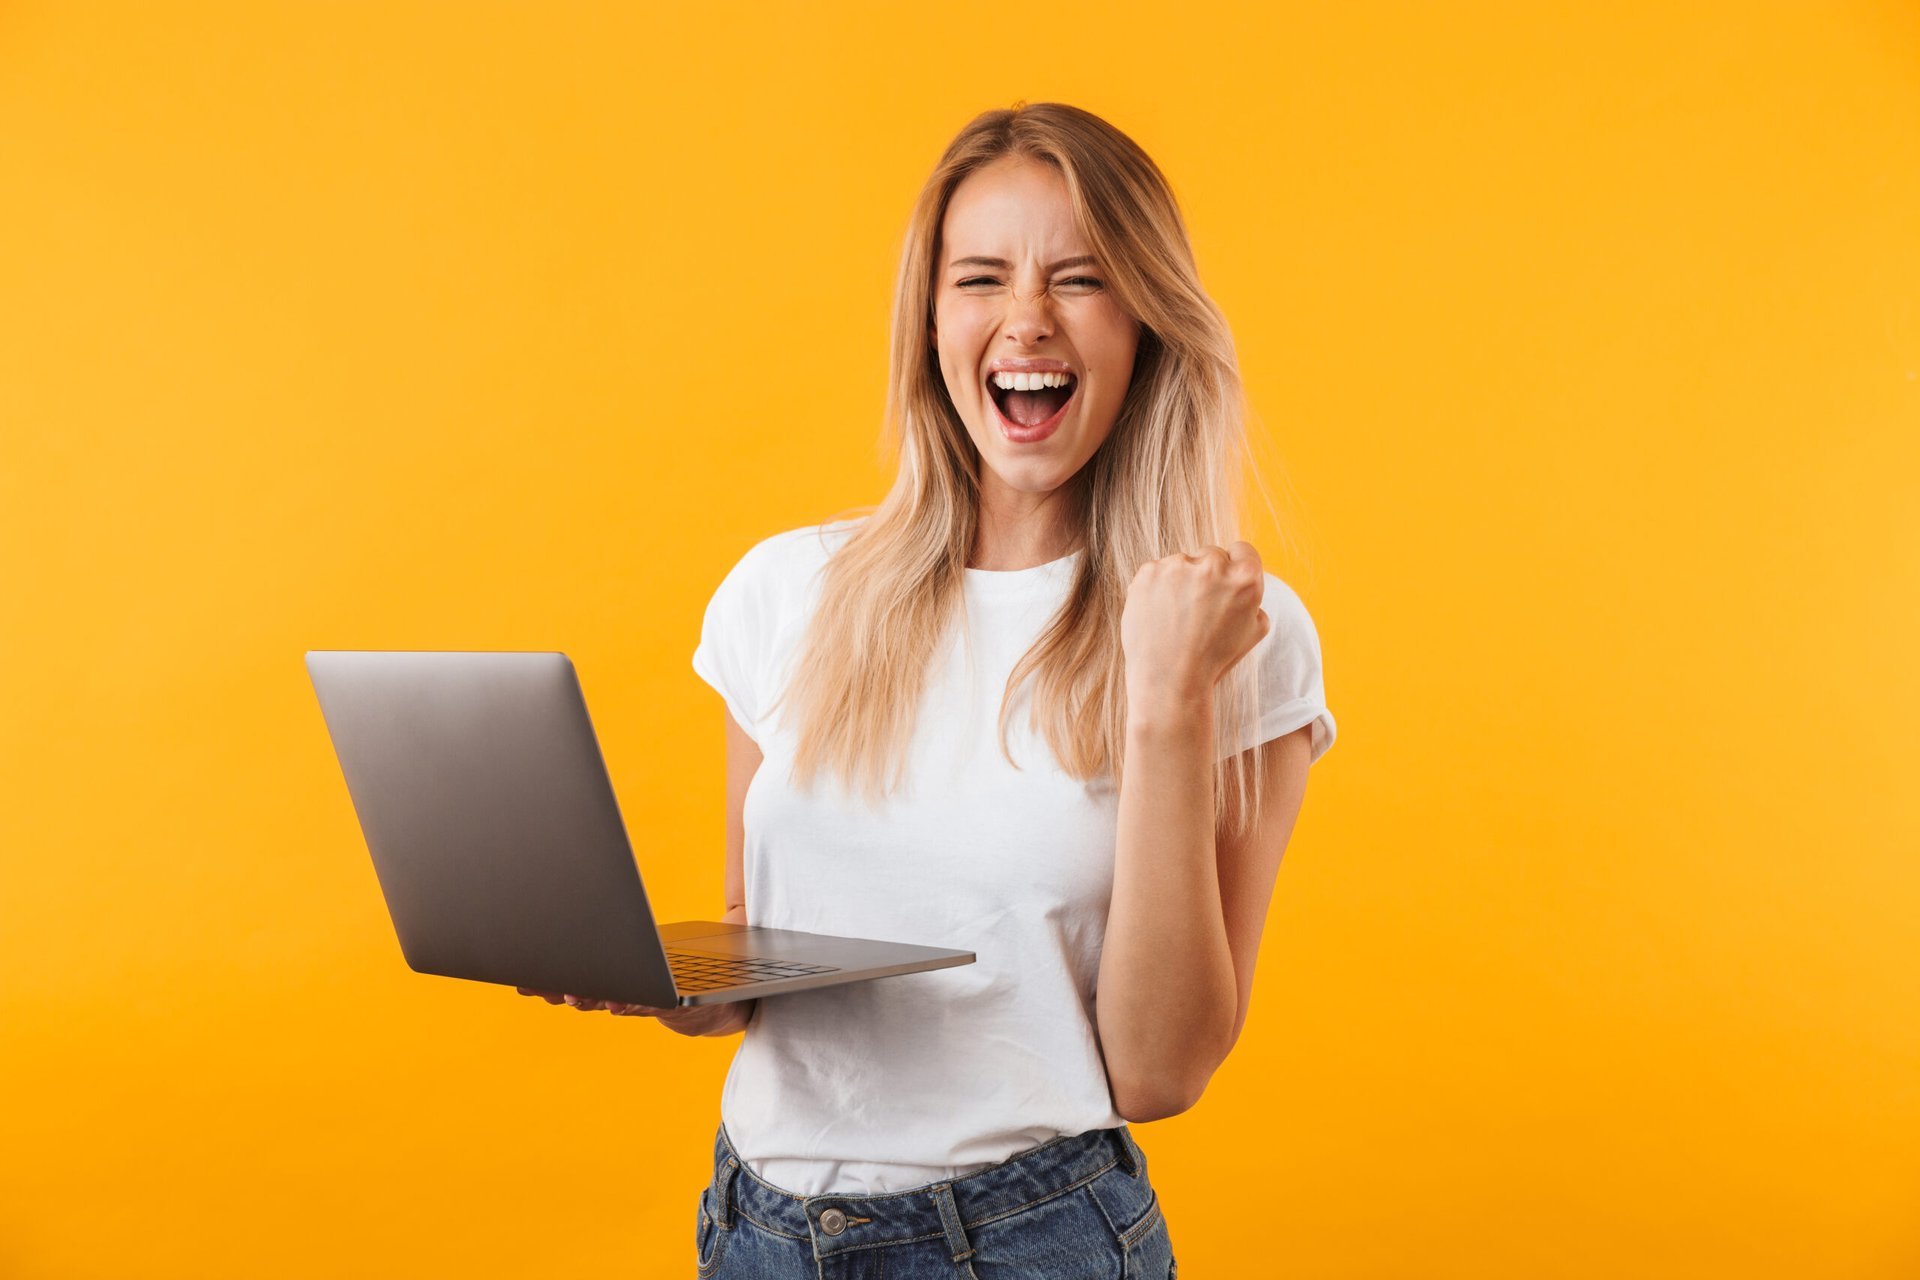 Excited woman on a laptop